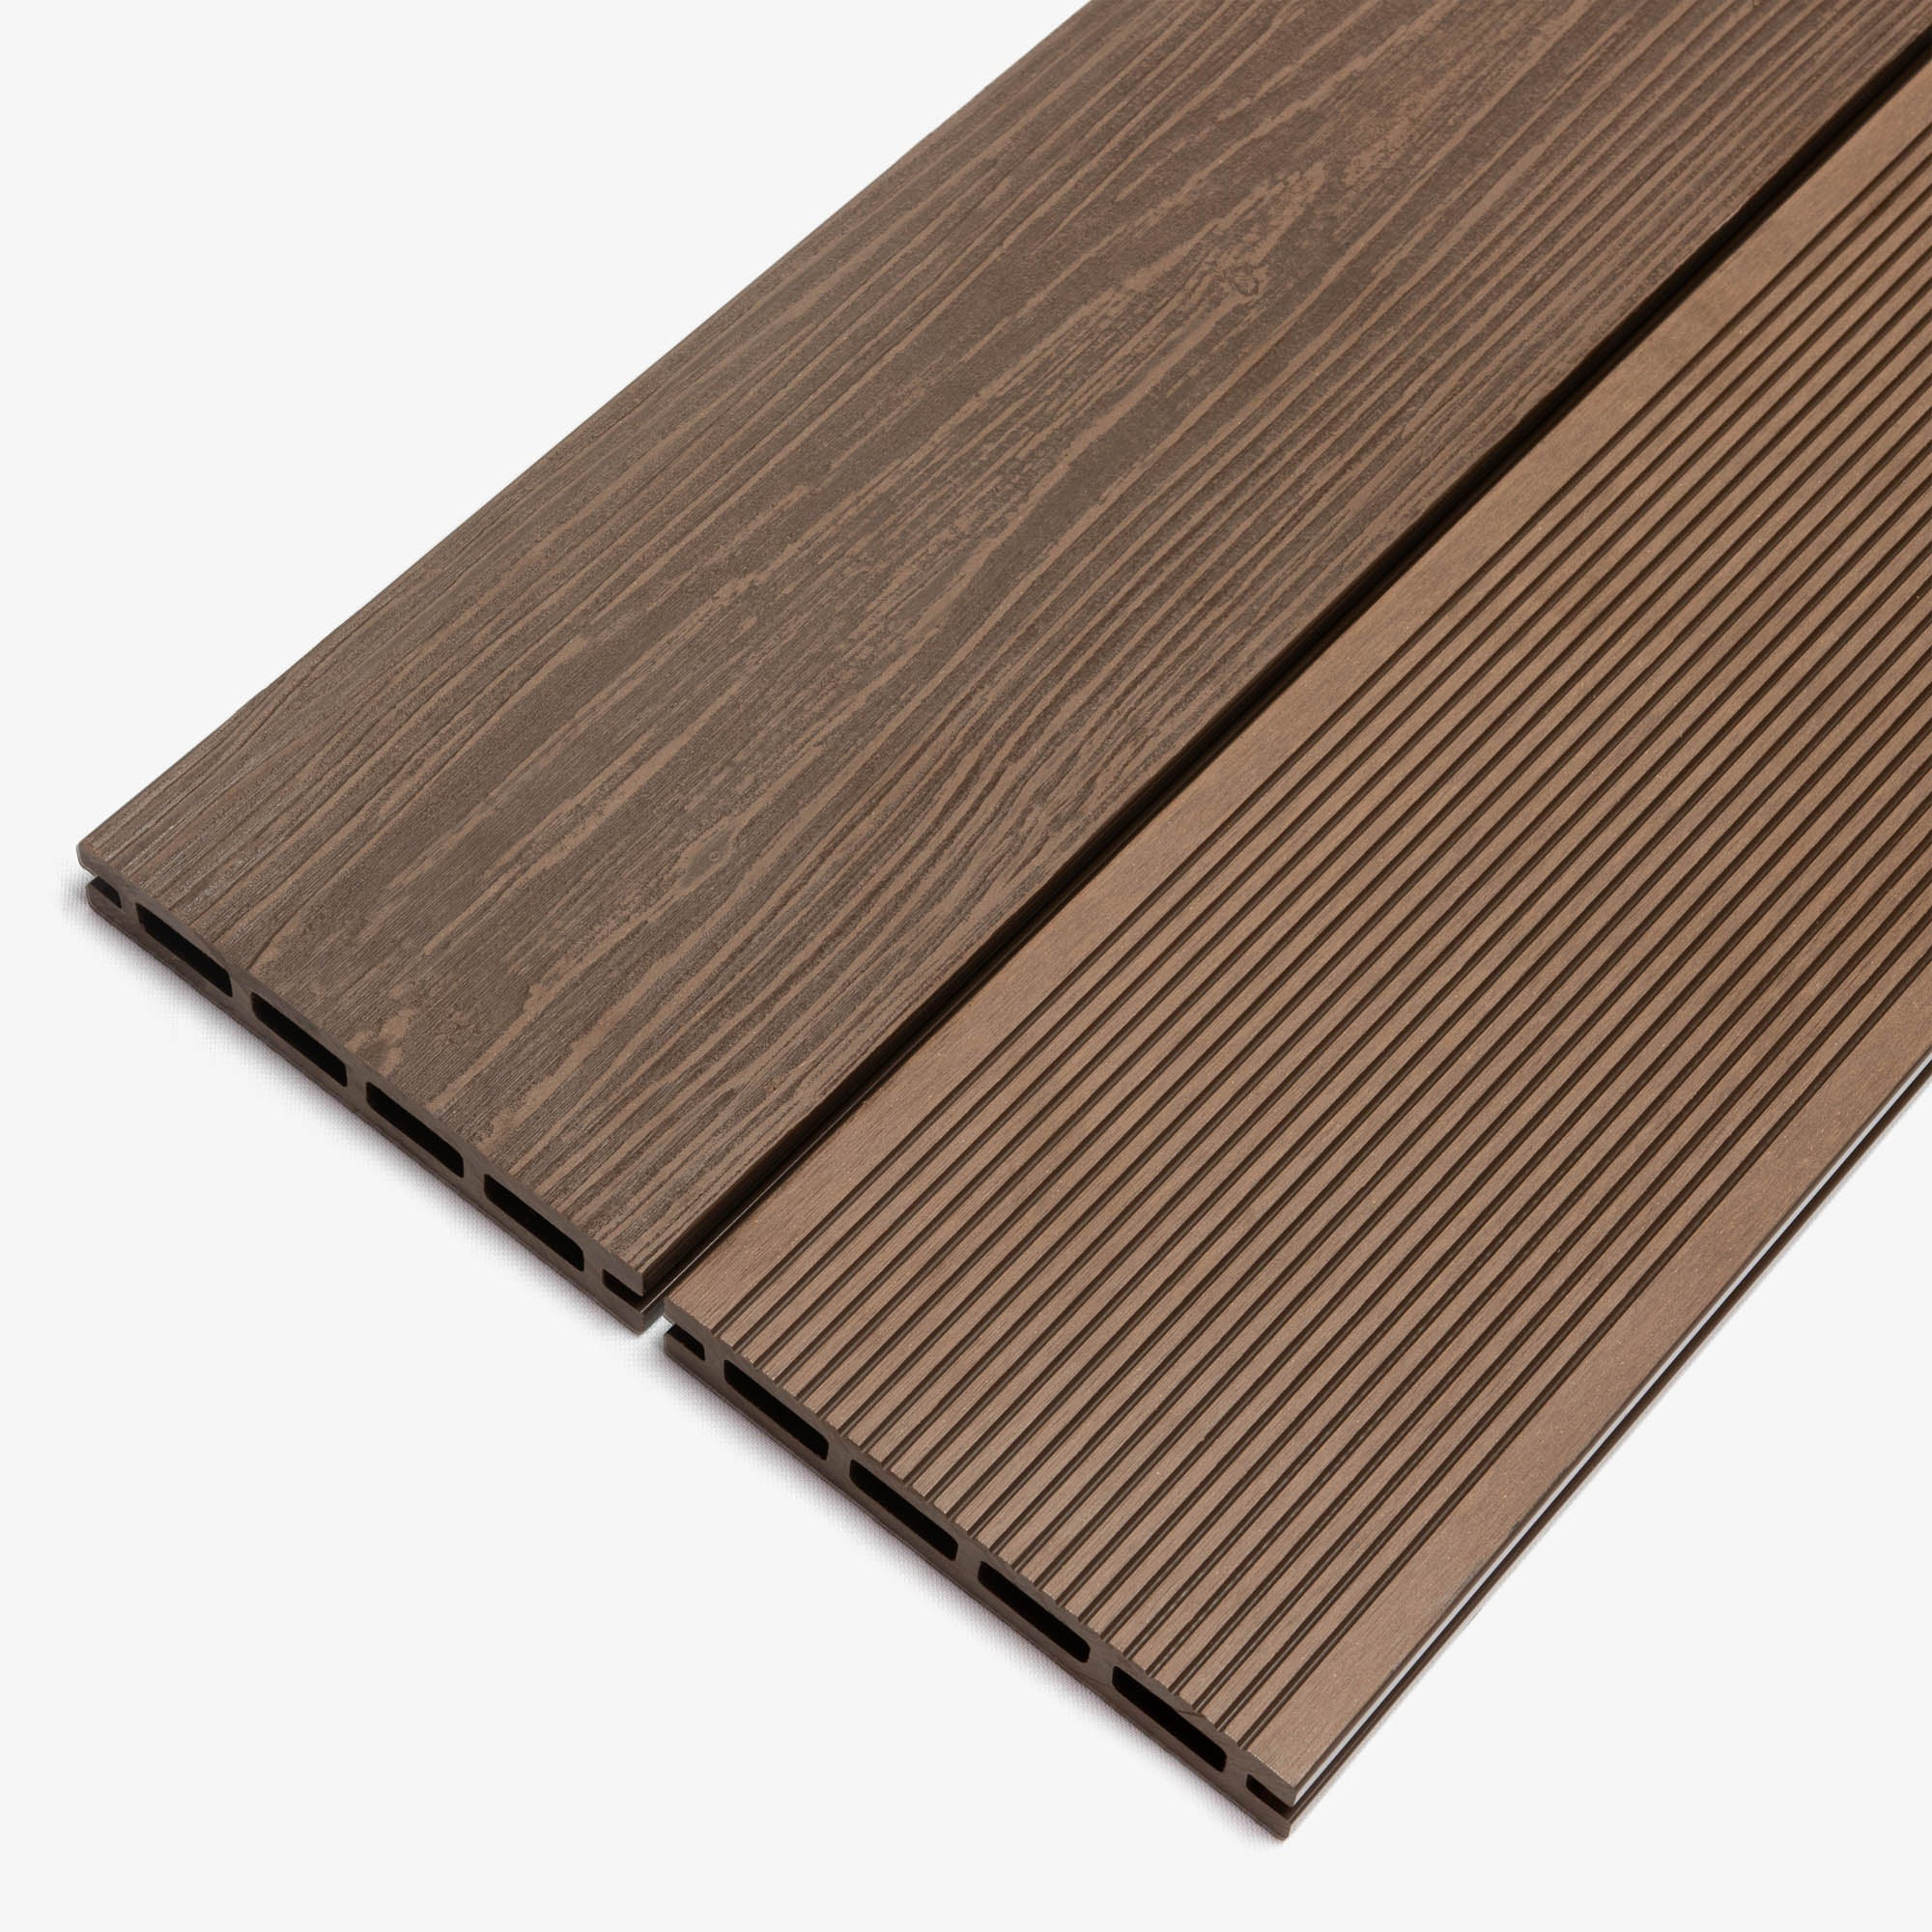 Walnut Composite Decking | Explorer